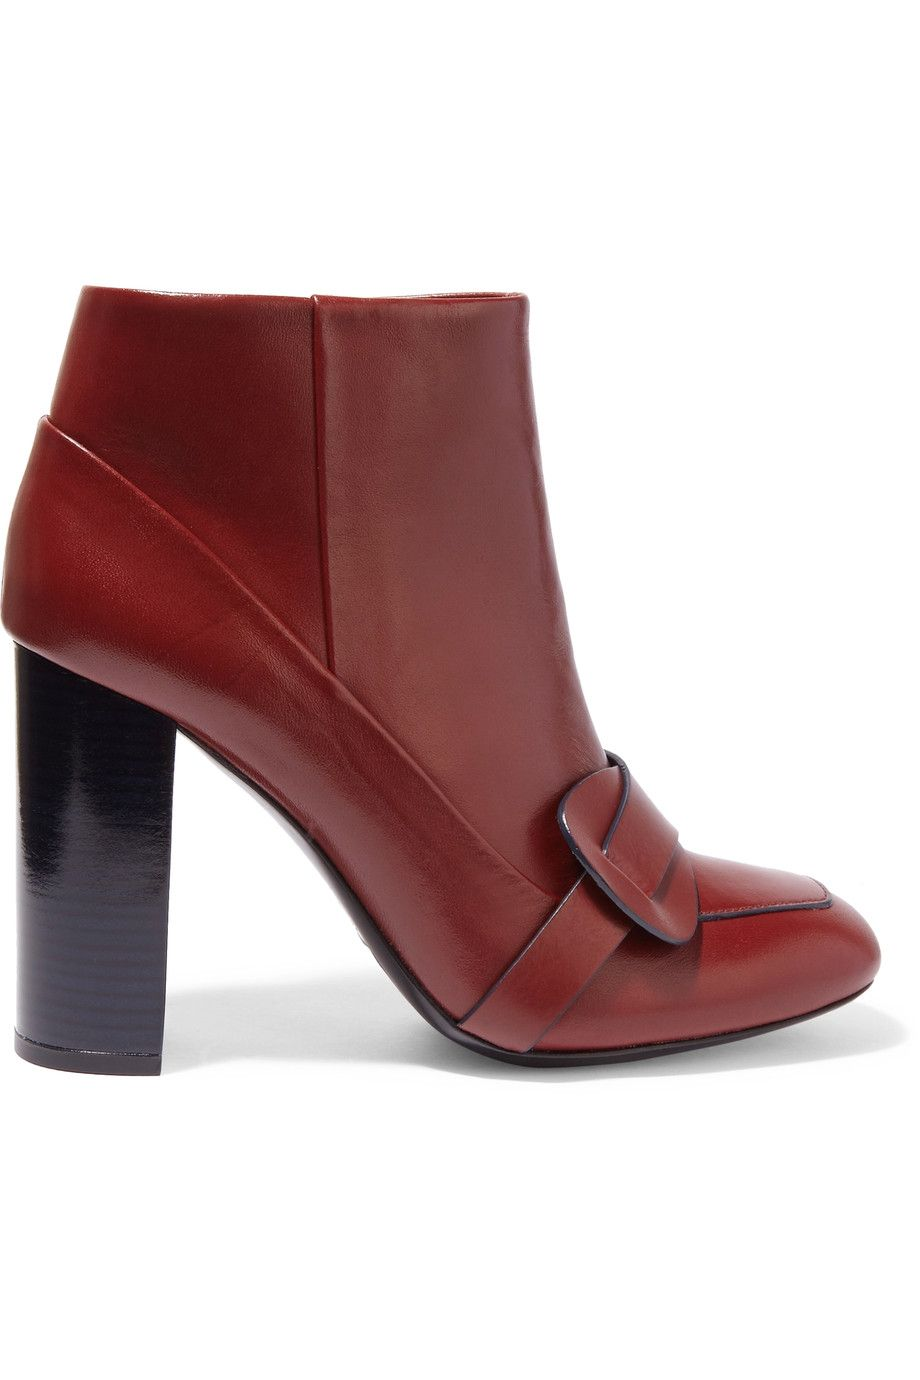 Shop on-sale Tory Burch Bond leather ankle boots. Browse other discount  designer Boots & more on The Most Fashionable Fashion Outlet, THE OUTNET.